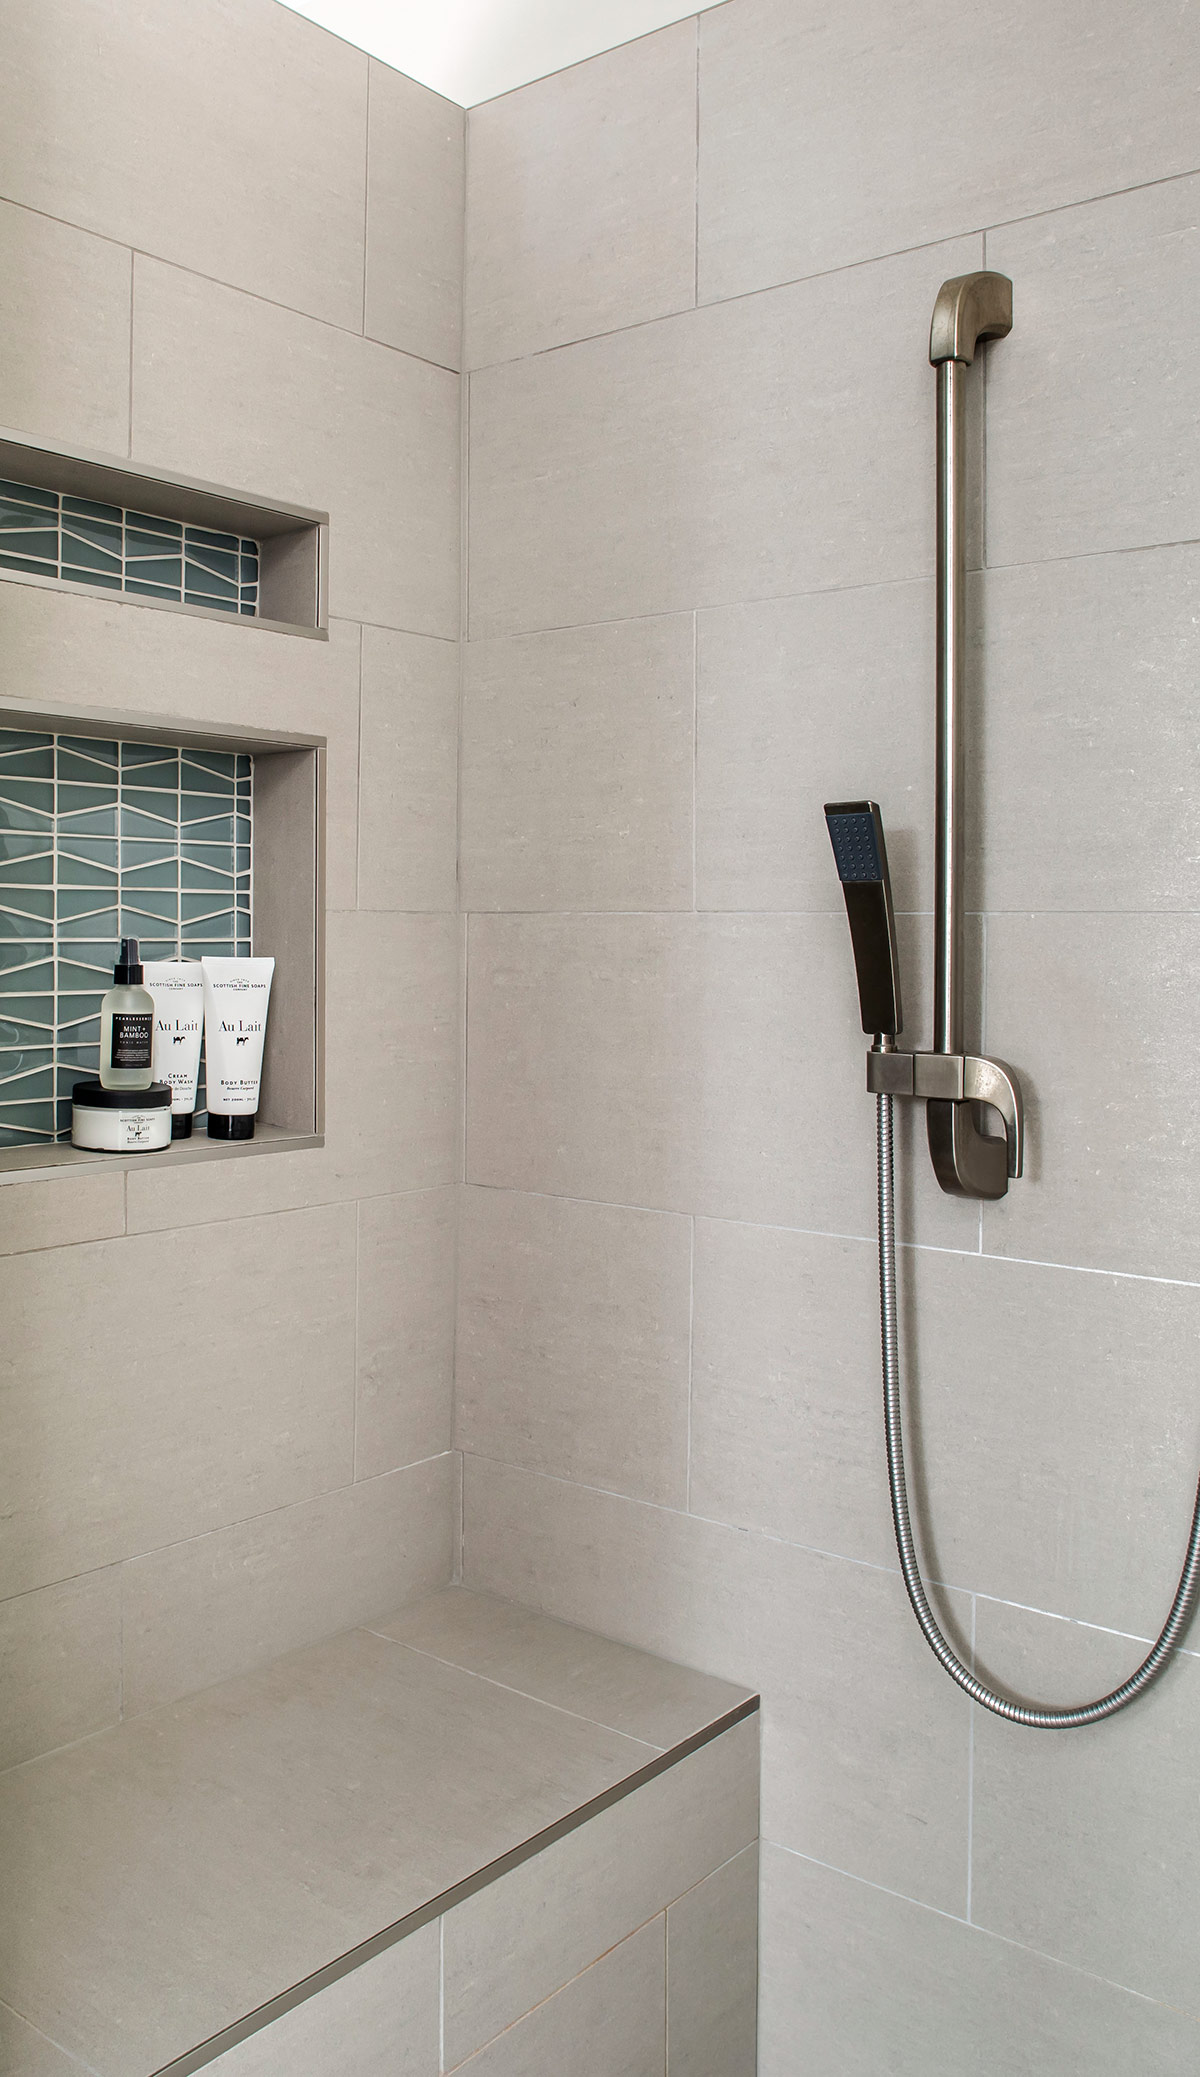 Master bathroom shower with grey tiles, bench, niche, and handheld shower head